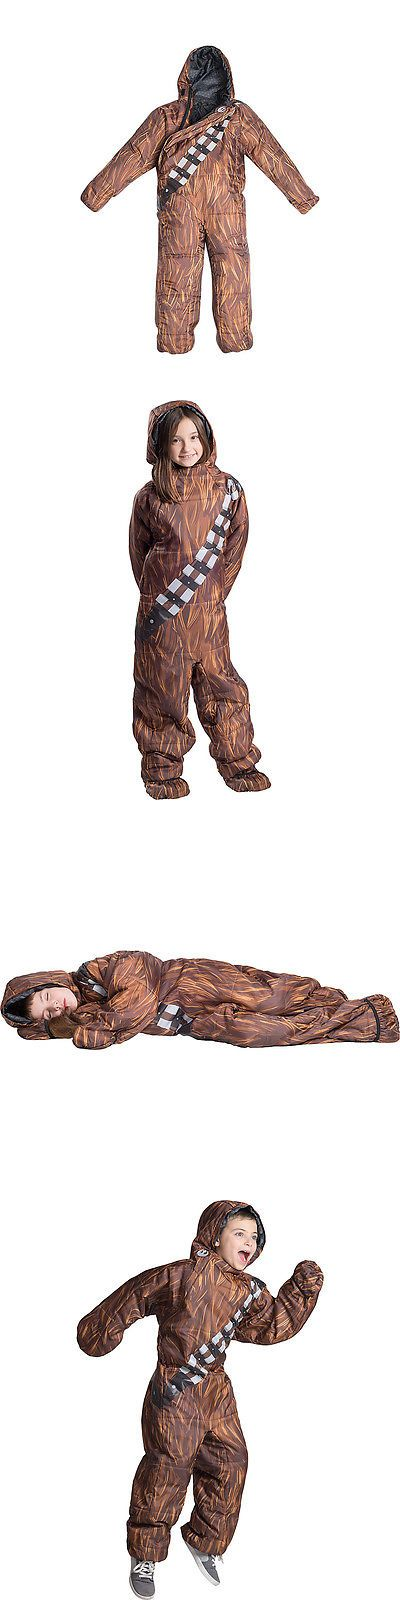 Camping Storage 181390: Selk Bag Kids Star Wars Wearable Sleeping Bag: Outdoor Accessorie New -> BUY IT NOW ONLY: $70.99 on eBay!